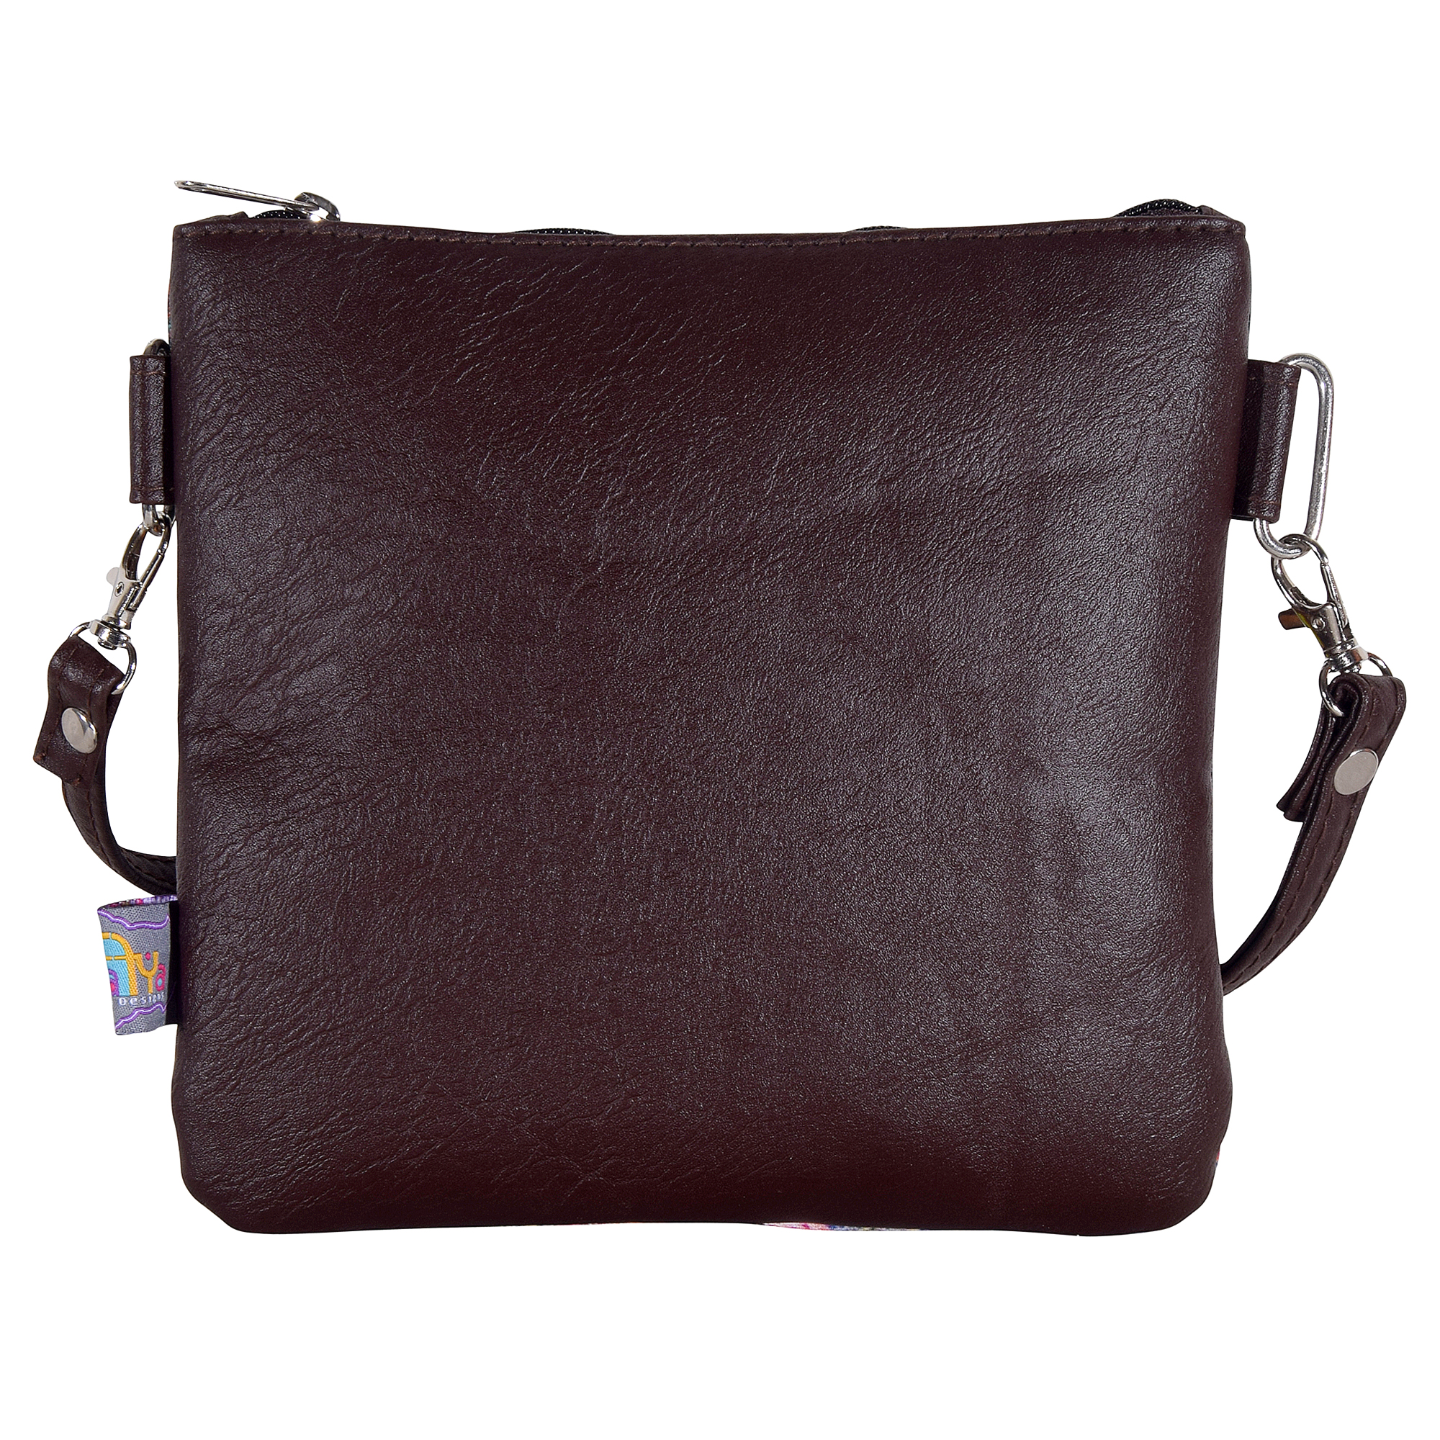 Gadisar Lake Small Sling Bag